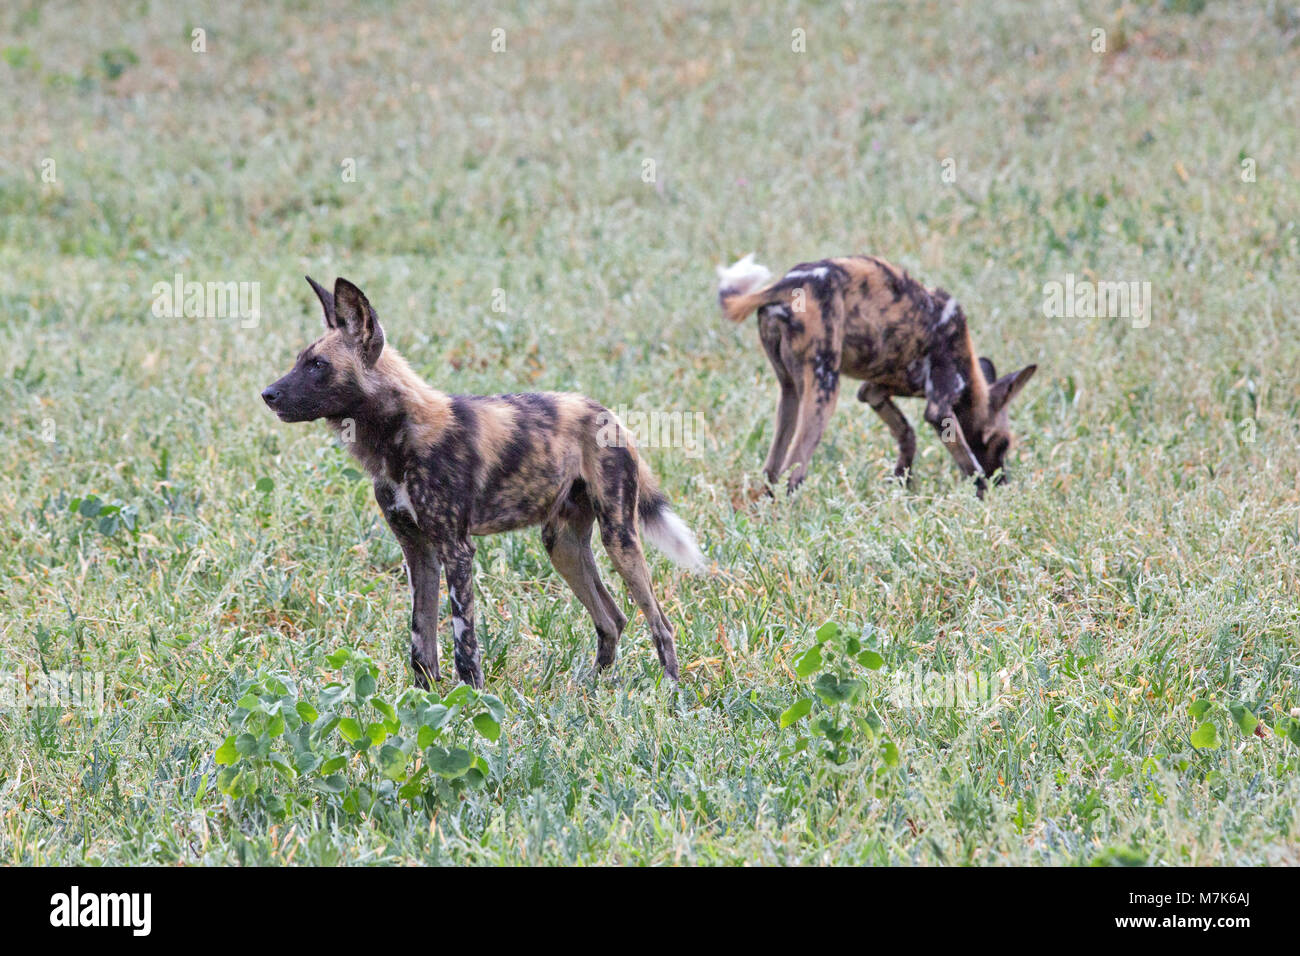 African Hunting Dog, African Wild Dog, or Painted Dogs (Lycaon pictus). Two of a pack positioning themselves ready - Stock Image